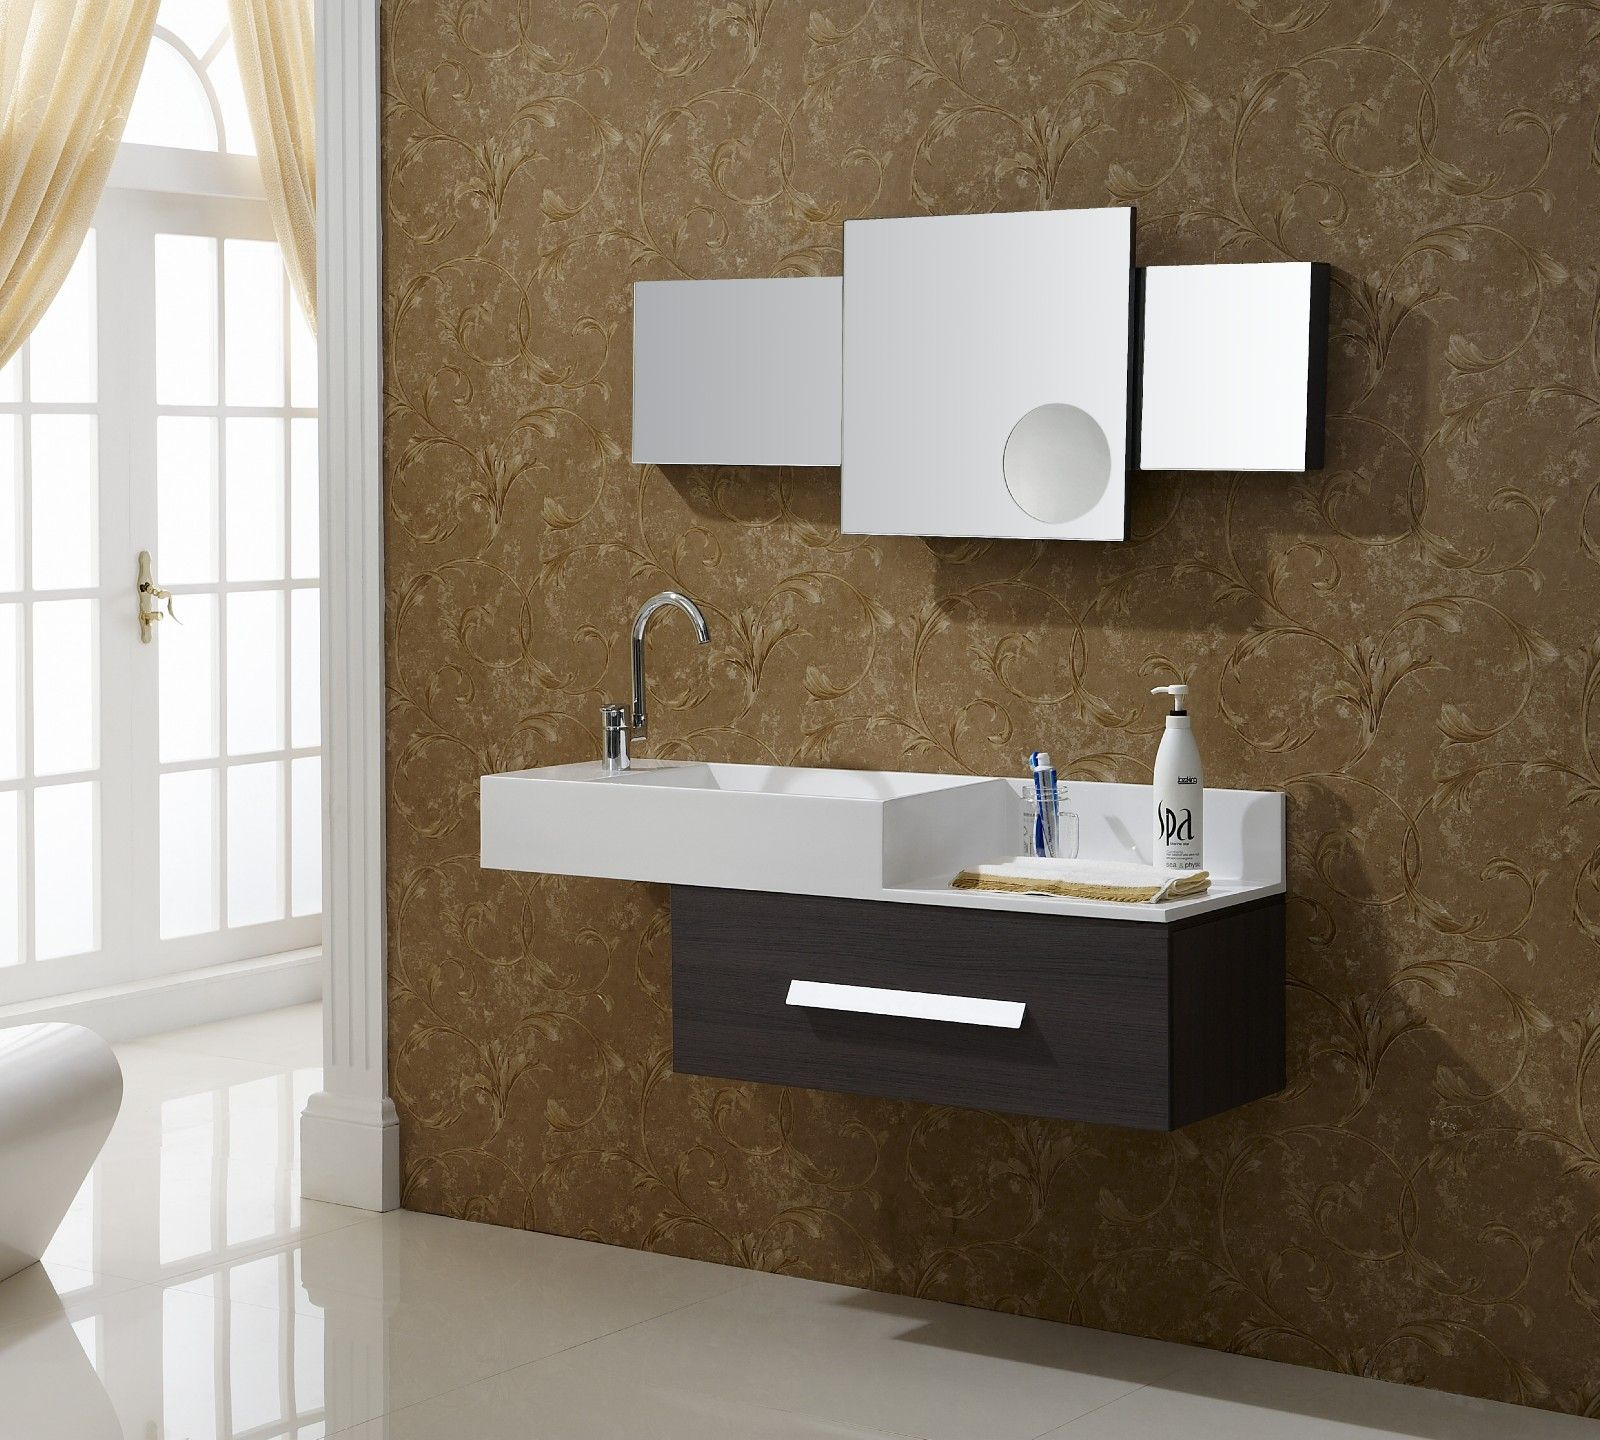 Bathroom Captivating Modern Vanities With Aviateur Wall Mount And Three Square Mirror Also Floating Vanity Sink Storage